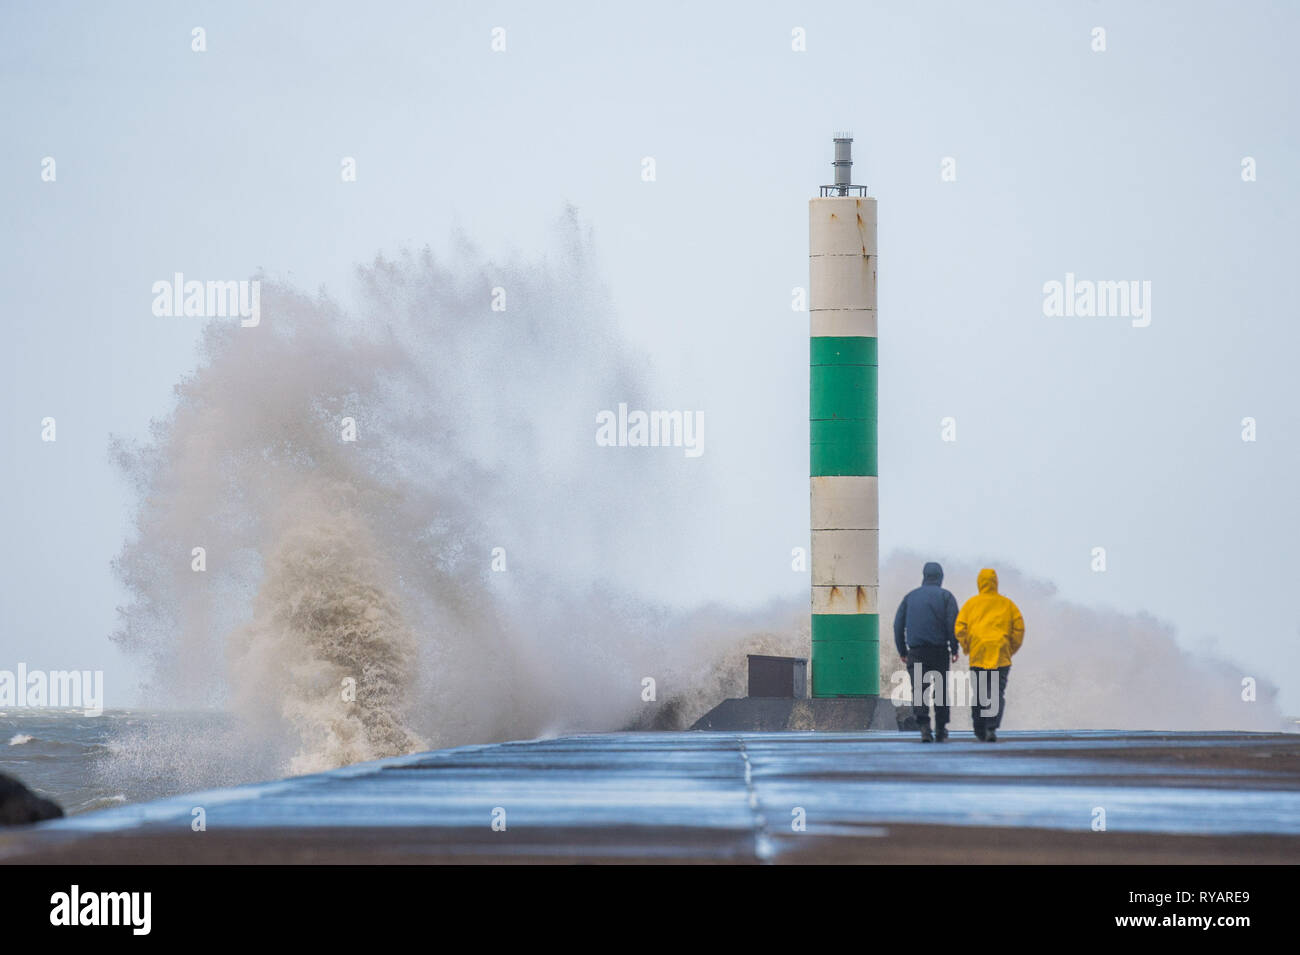 Aberystwyth, UK. 13th Mar, 2019. UK Weather: Young men take risks to get dramatic photographs of themselves close to the waves as gale force winds from Storm Gareth - the third named storm of 2019 - hit Aberystwyth on the Cardigan Bay coast, West Wales UK on Wednesday afternoon. Gusts of up to 70 or 80mph are forecast in exposed Northern regions, with the risk of serious damage to property and severe disruption to travel and power services Photo Credit: keith morris/Alamy Live News - Stock Image